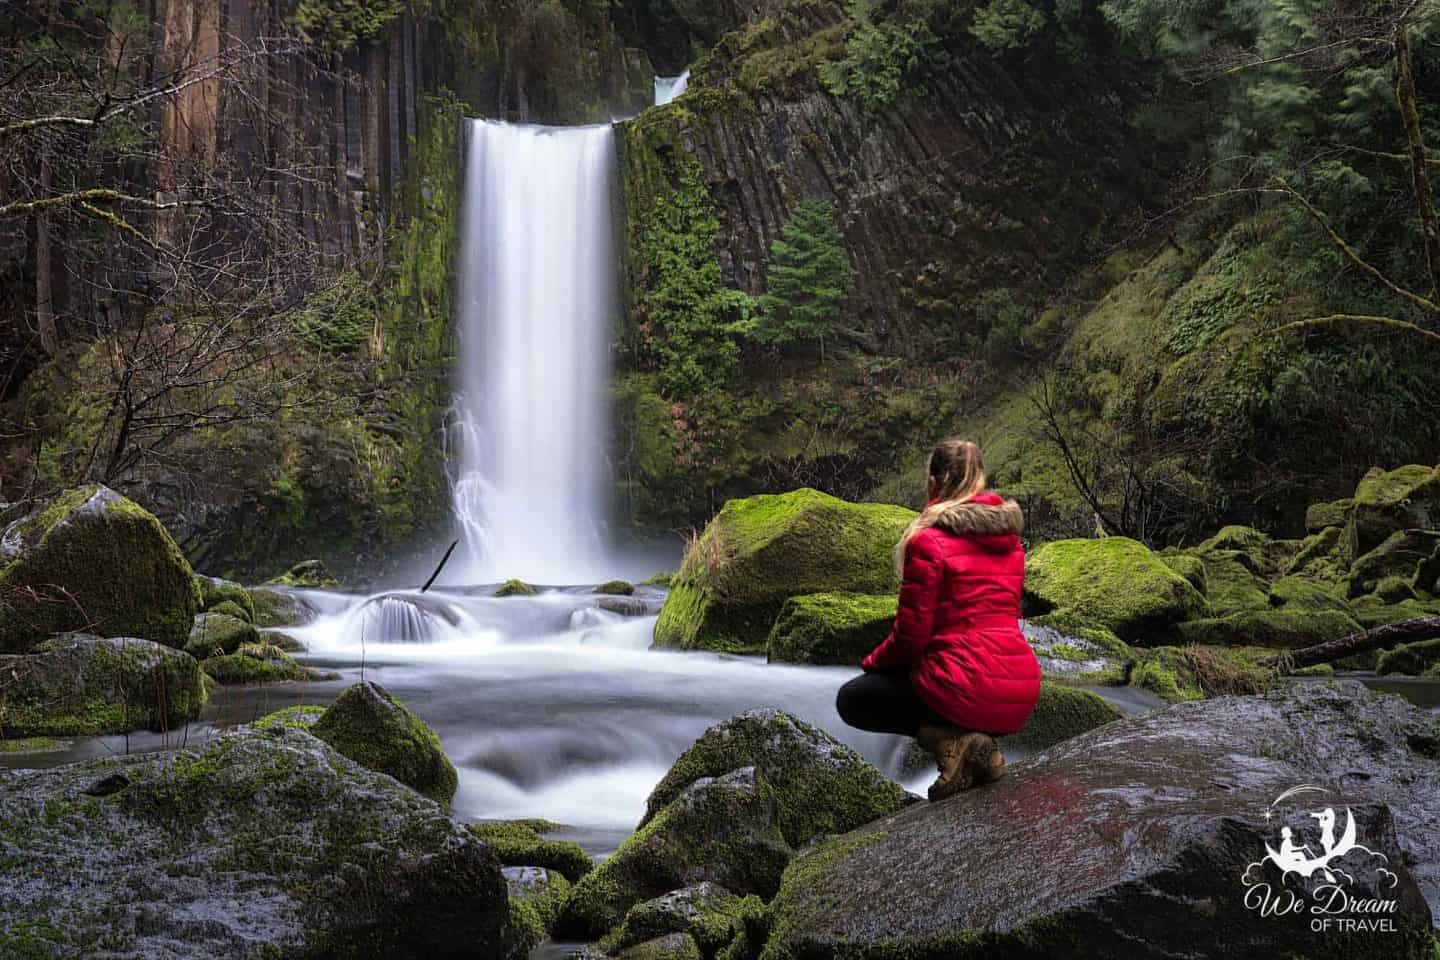 Explore our favorite, most beautiful waterfalls in Oregon with this photography guide.